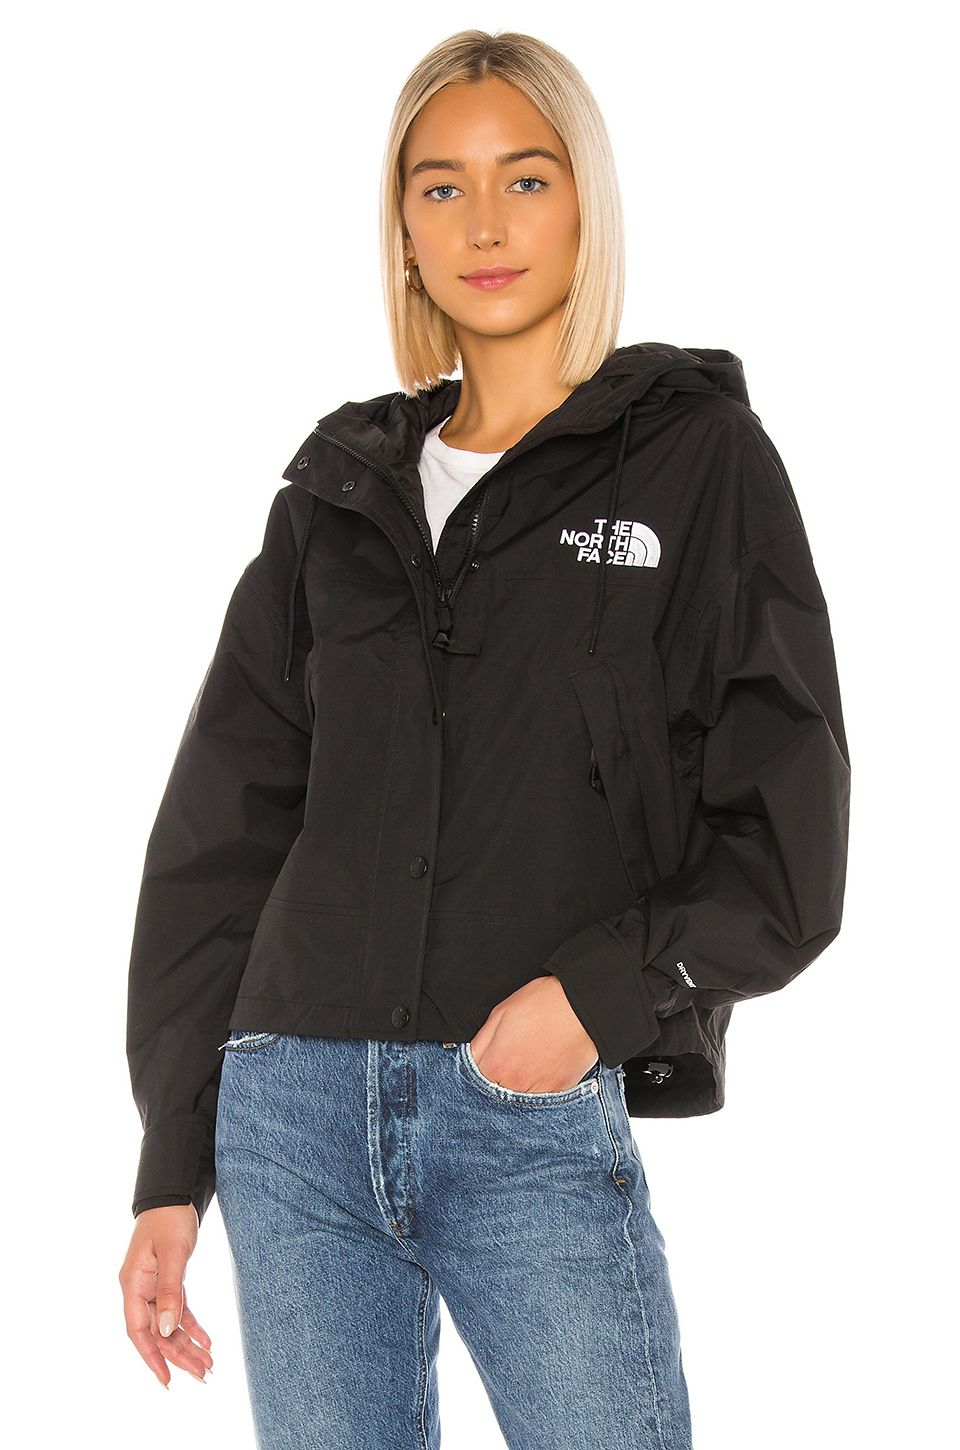 The North Face Reign On Cropped Jacket In Tnf Black Aff Ad Reign Cropped Black Face North Face Jacket Outfit North Face Jacket Jacket Outfits [ 1450 x 960 Pixel ]